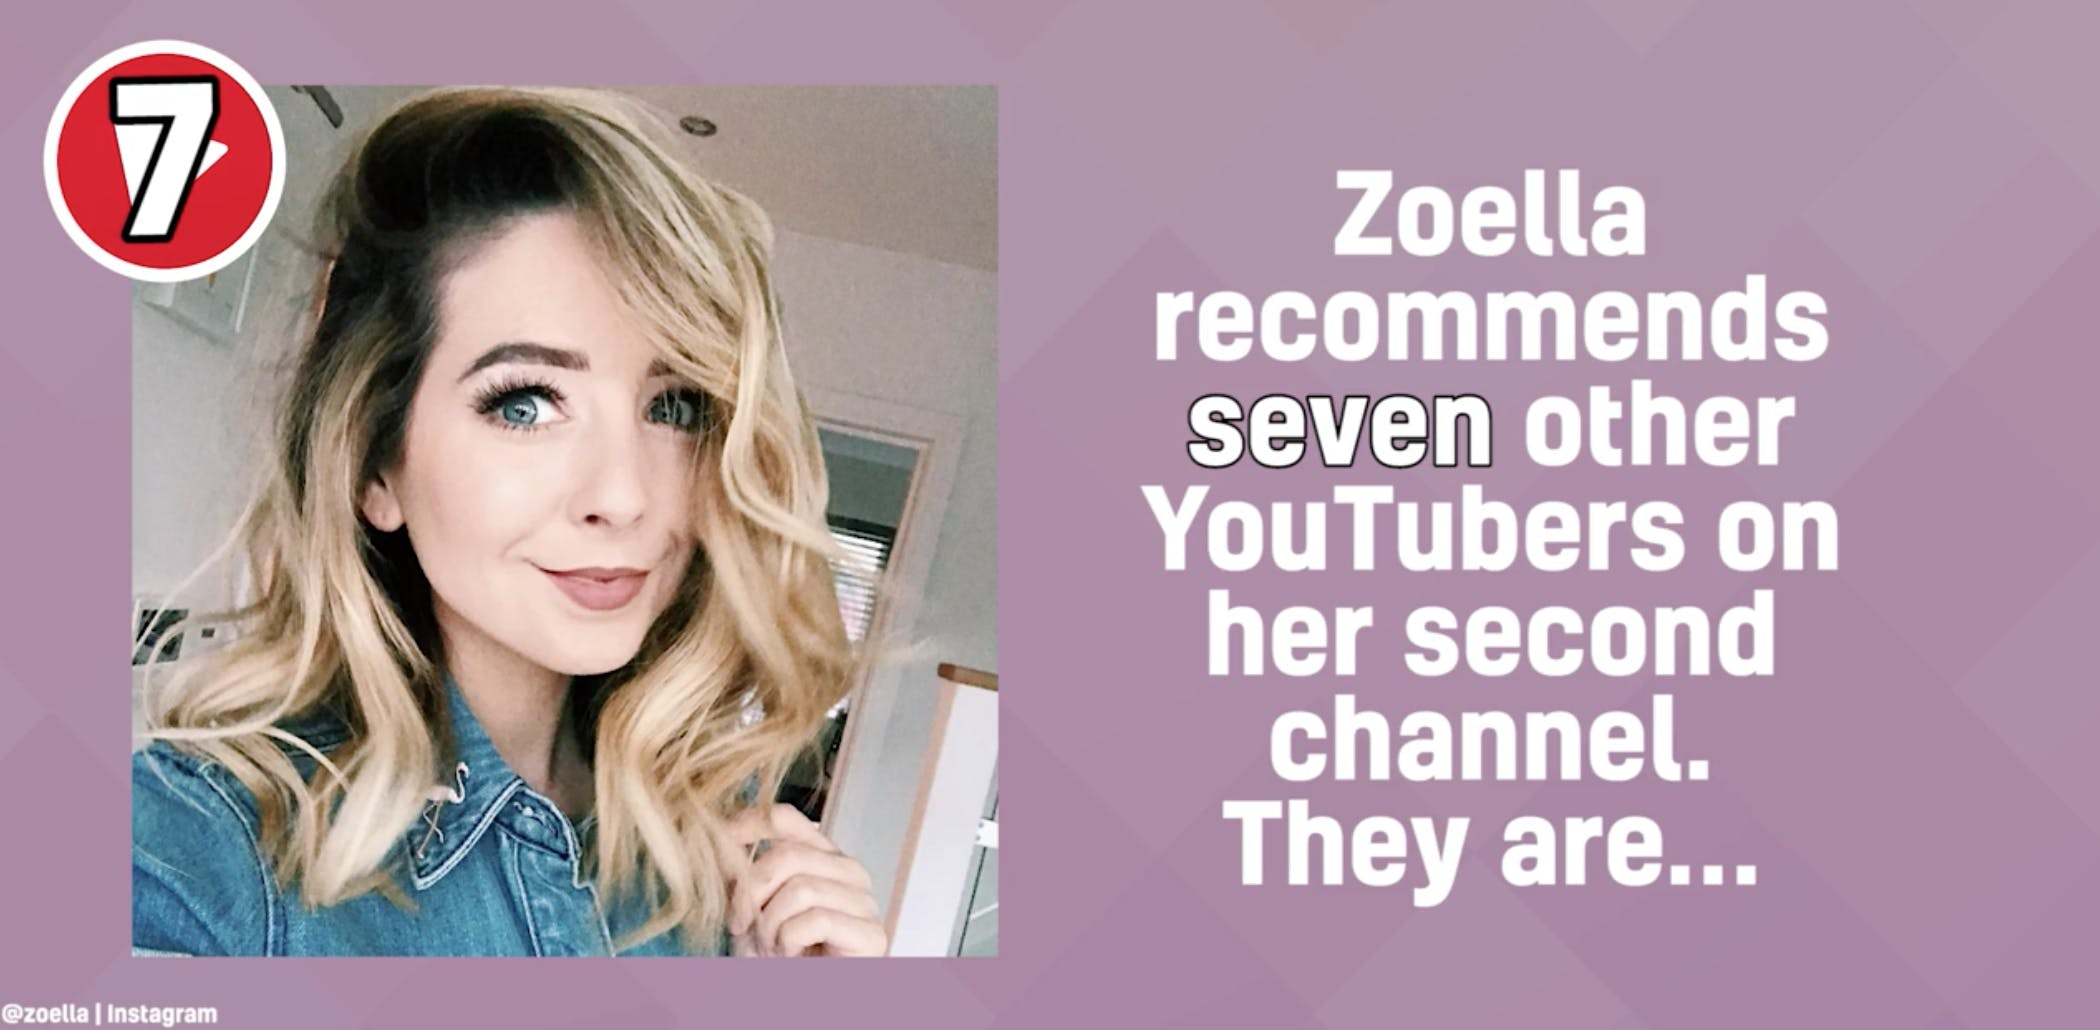 Zoella's YouTube recommendations